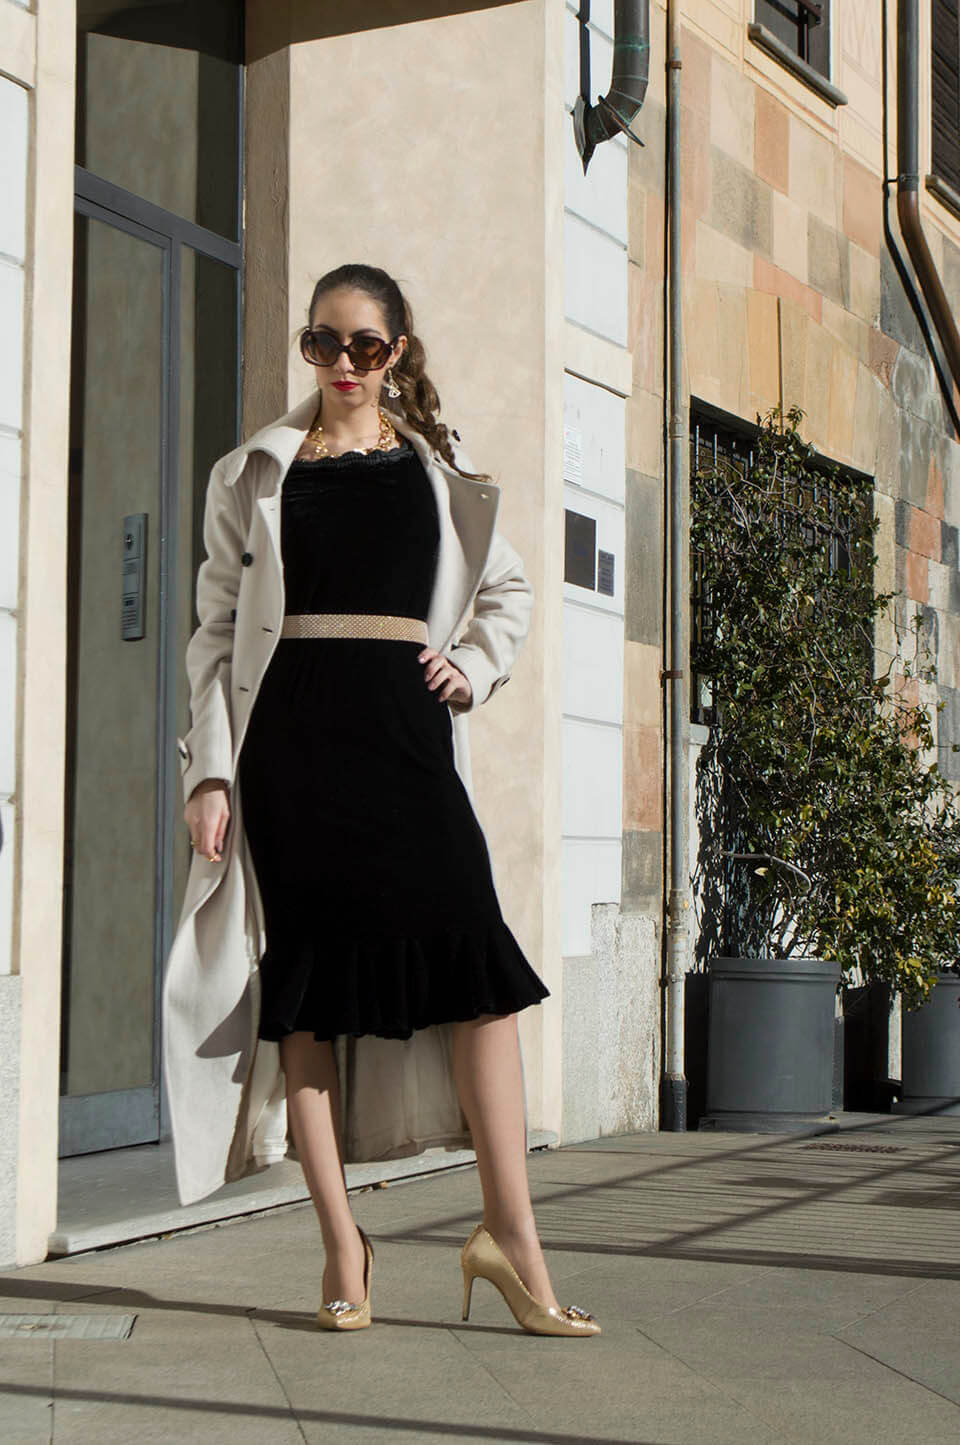 Manu Luize - Stylewe velvet dress